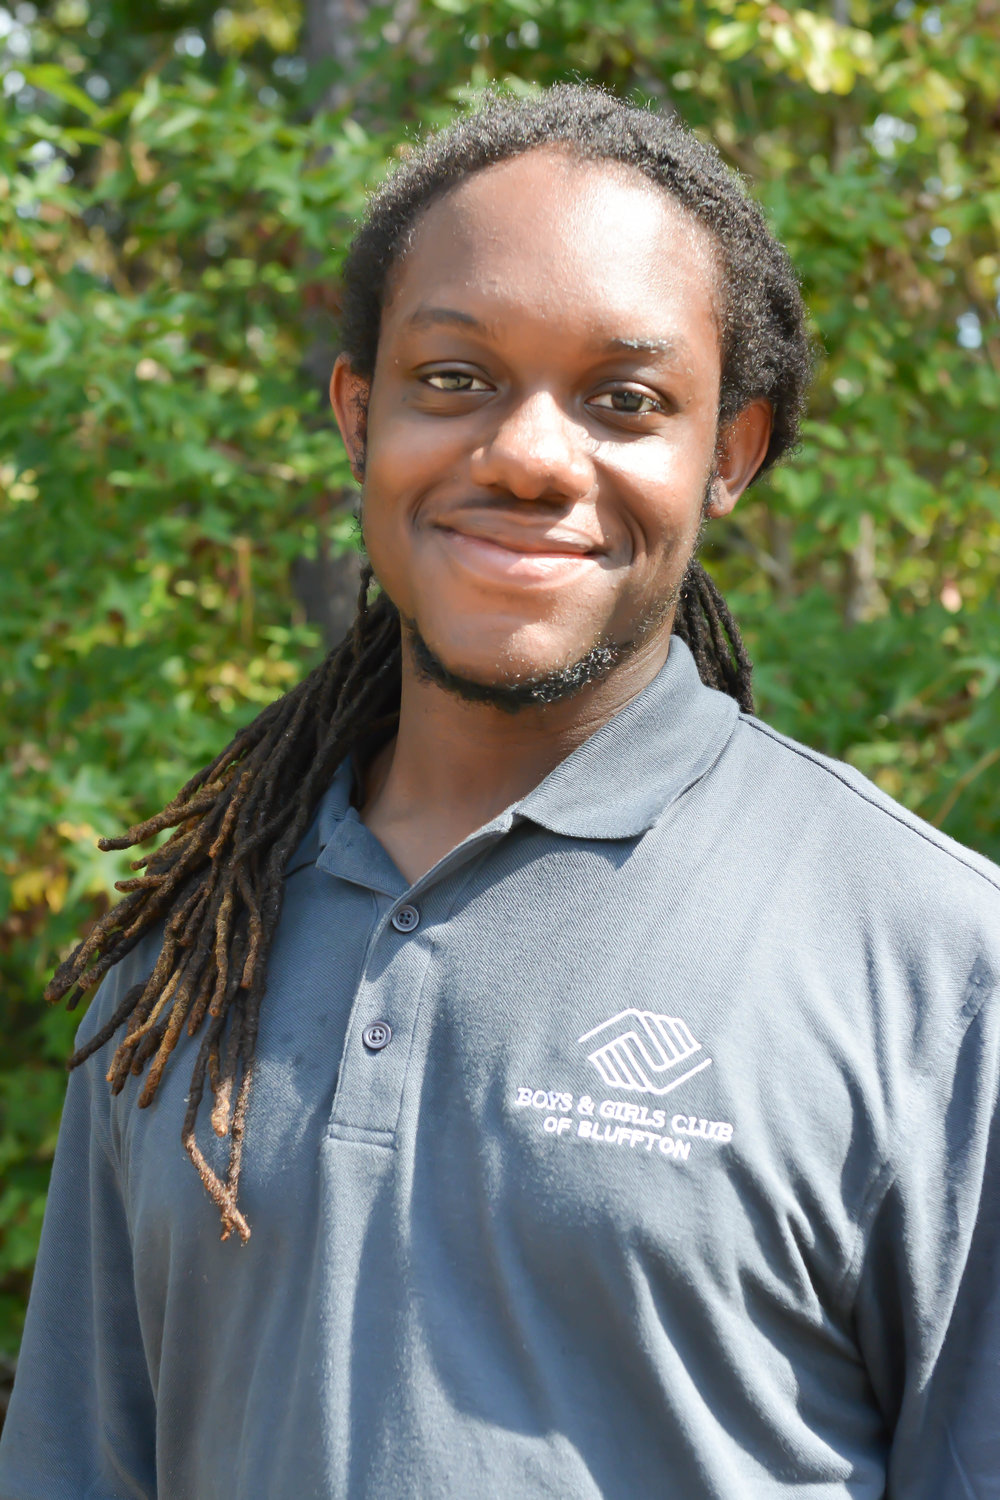 Aaron (AJ) Jenkins    Where is AJ Now?  AJ graduated from the Art Institute of Charleston in 2018 with a degree in Culinary Arts.  AJ still works periodically at his Bluffton Boys & Girls Club when we need an extra set of hands!  _____________________    2013 Lowcountry Youth of the Year  2013 Bluffton Youth of the Year    2012 Bluffton Youth of the Year